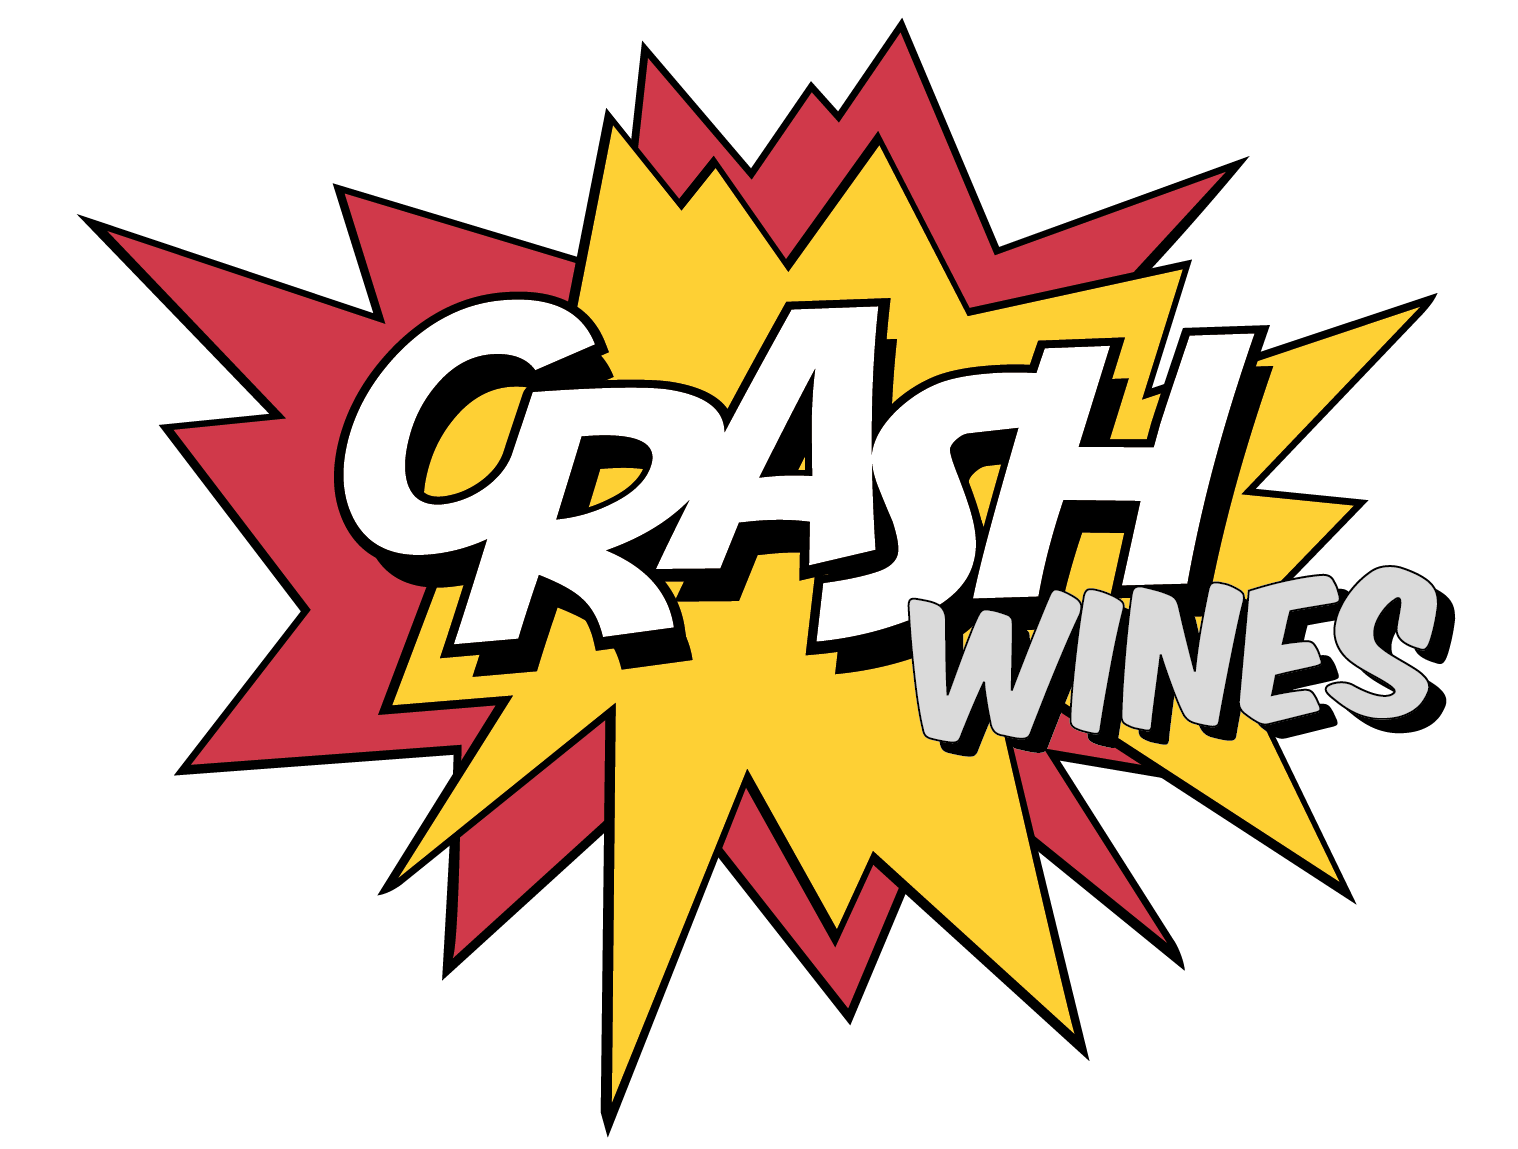 crash connotation of the word crash Crashes are almost always the result of driver error, poor decisions, negligent   drunk, drugged, distracted and negligent drivers the connotation of innocense.